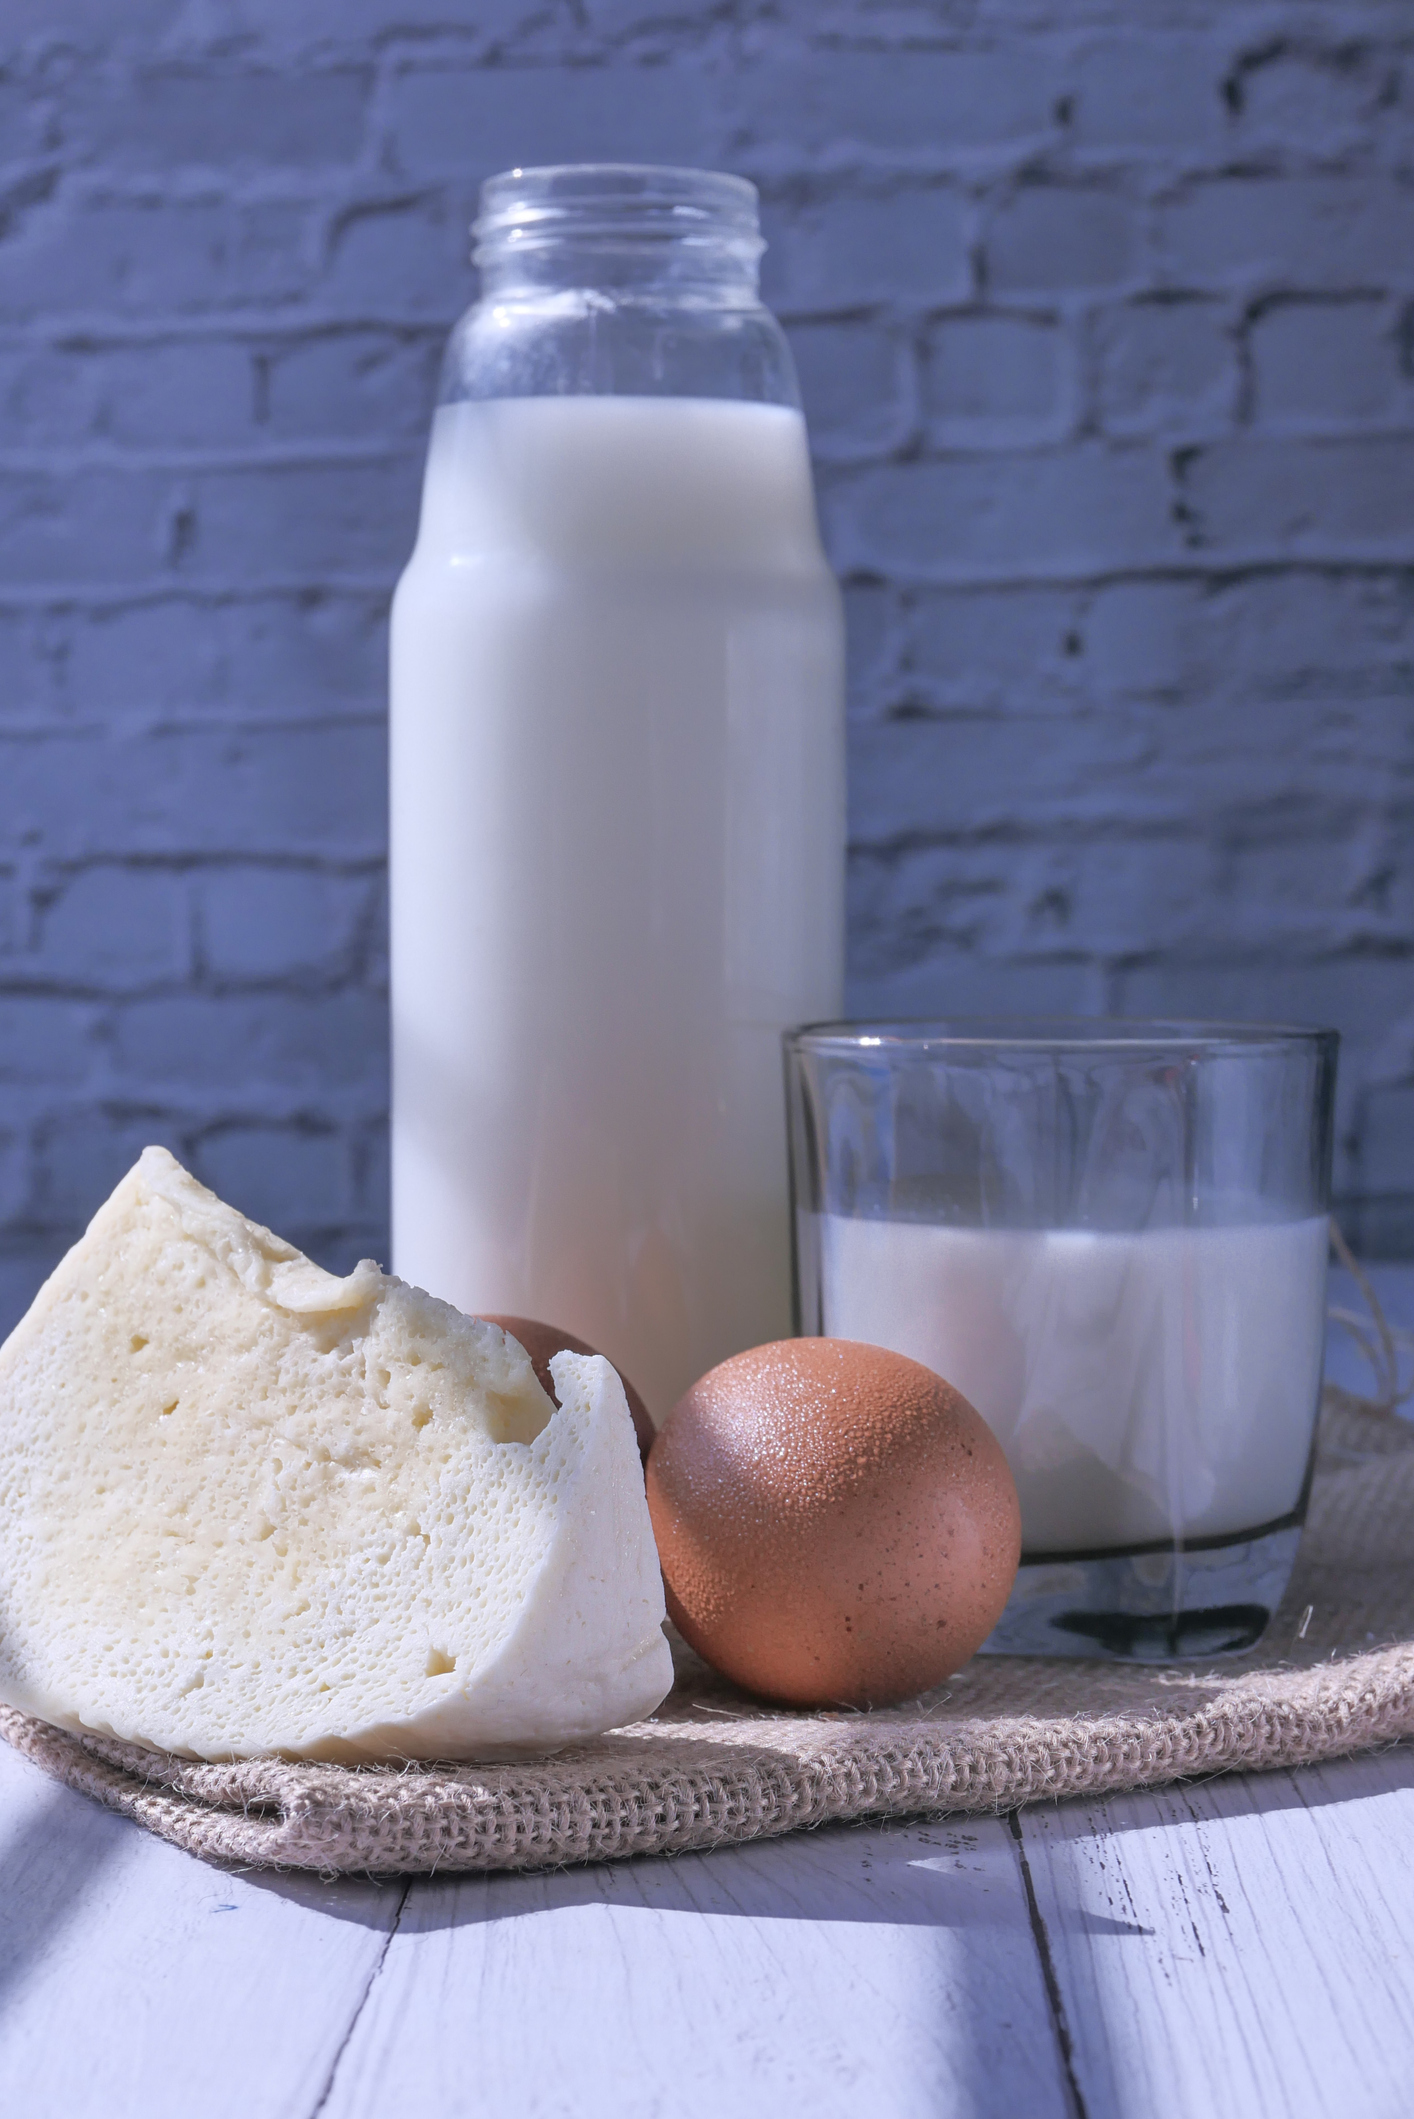 milk, cheese and egg on table